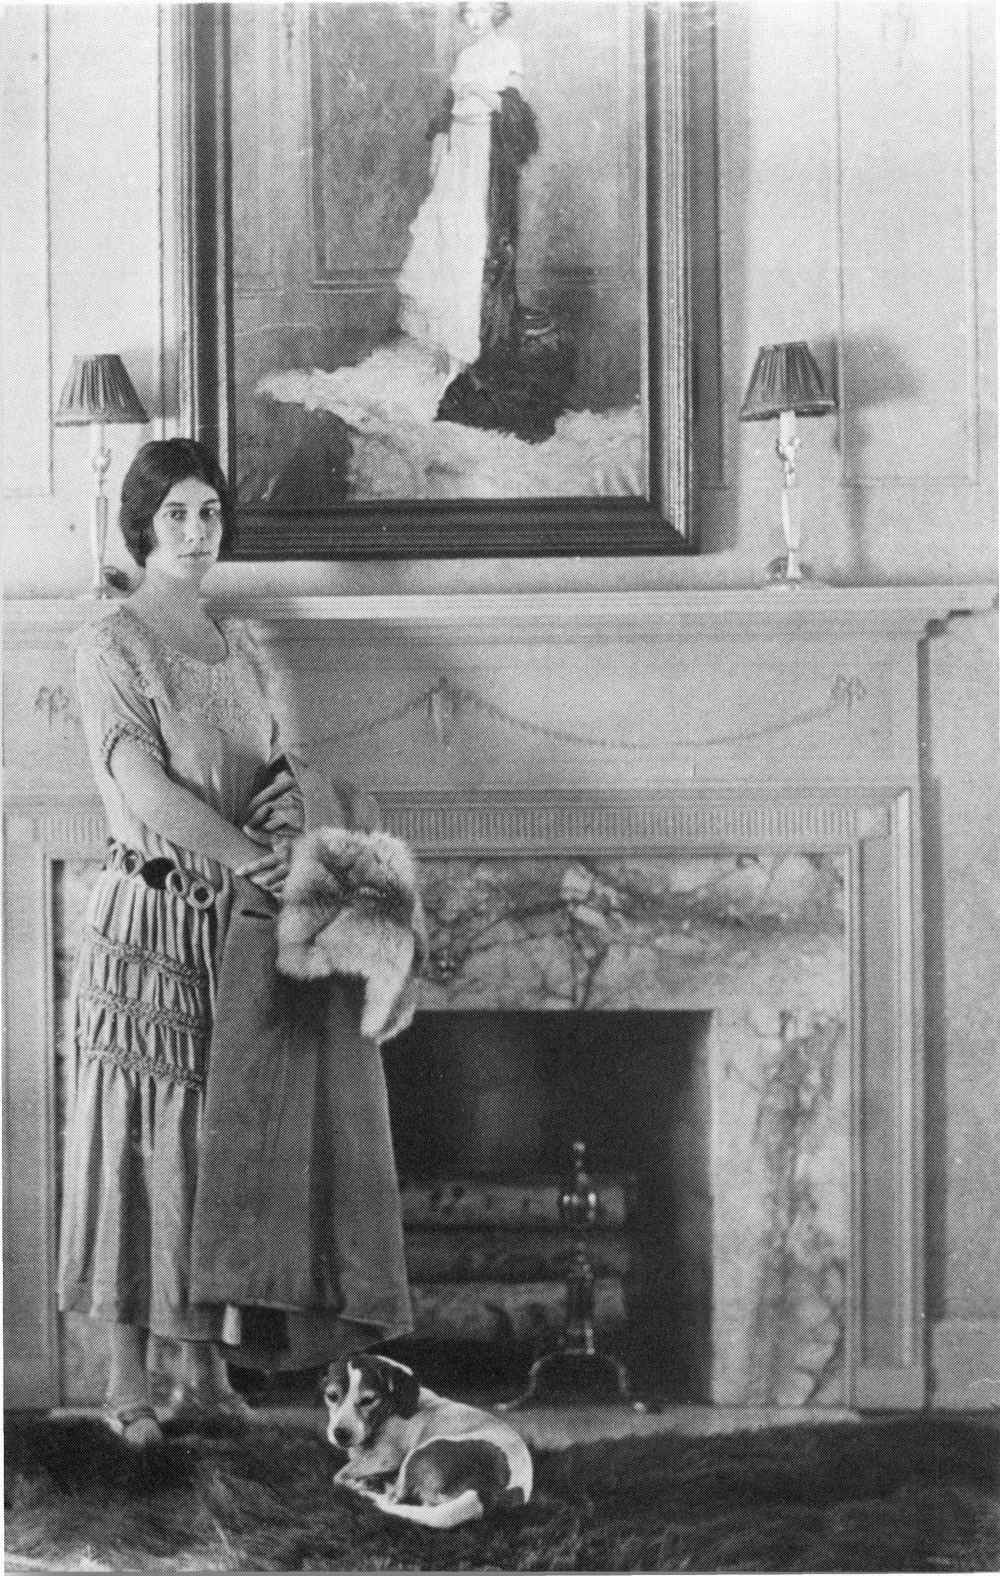 Ethel Curwood at her home on 508 West Williams Street